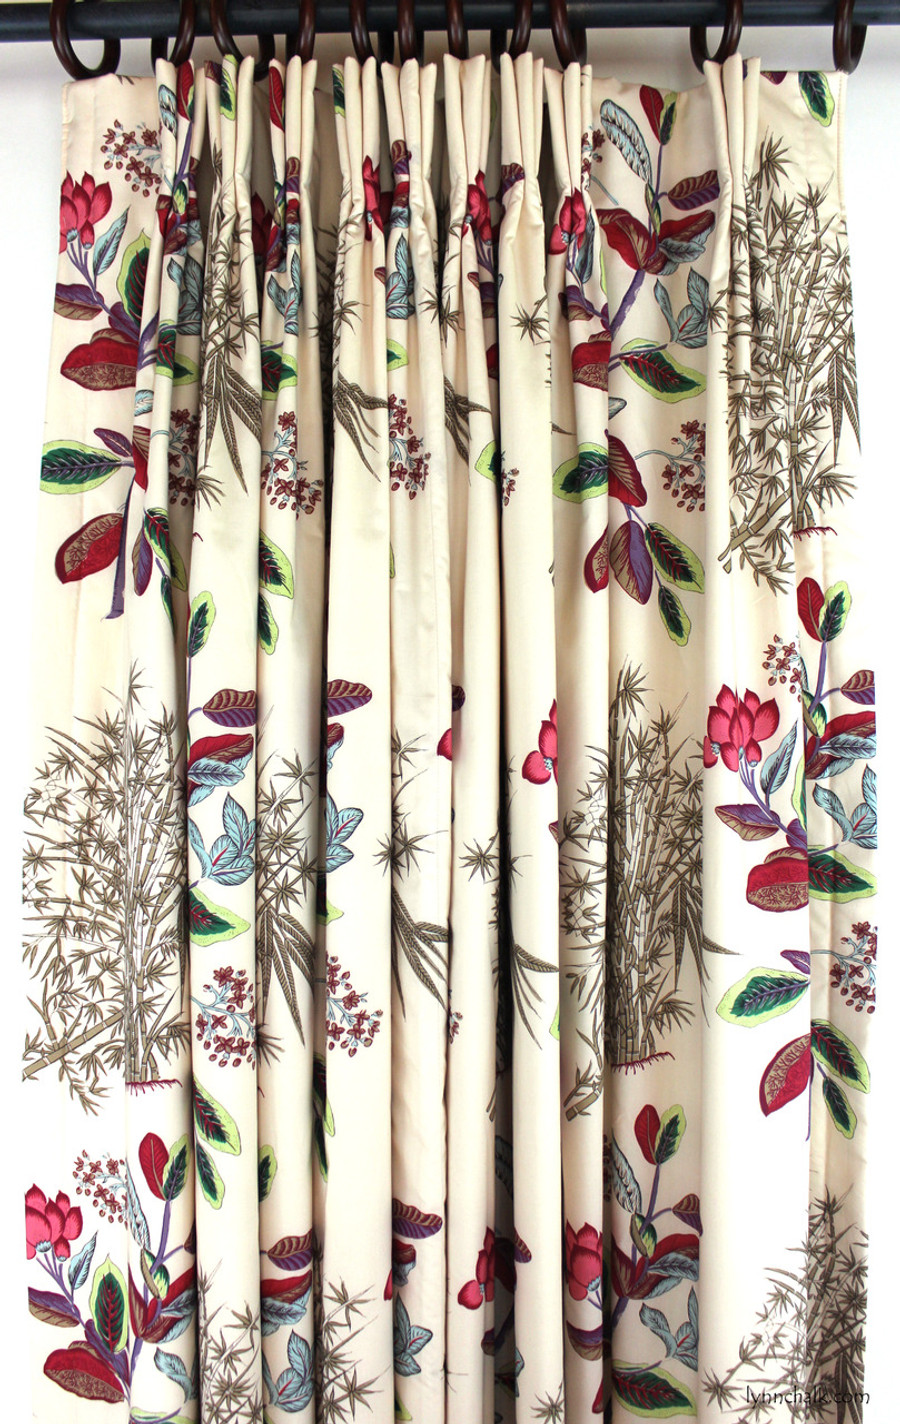 Quadrille Jardin Des Plantes Multi Custom Drapes Lined and Interlined